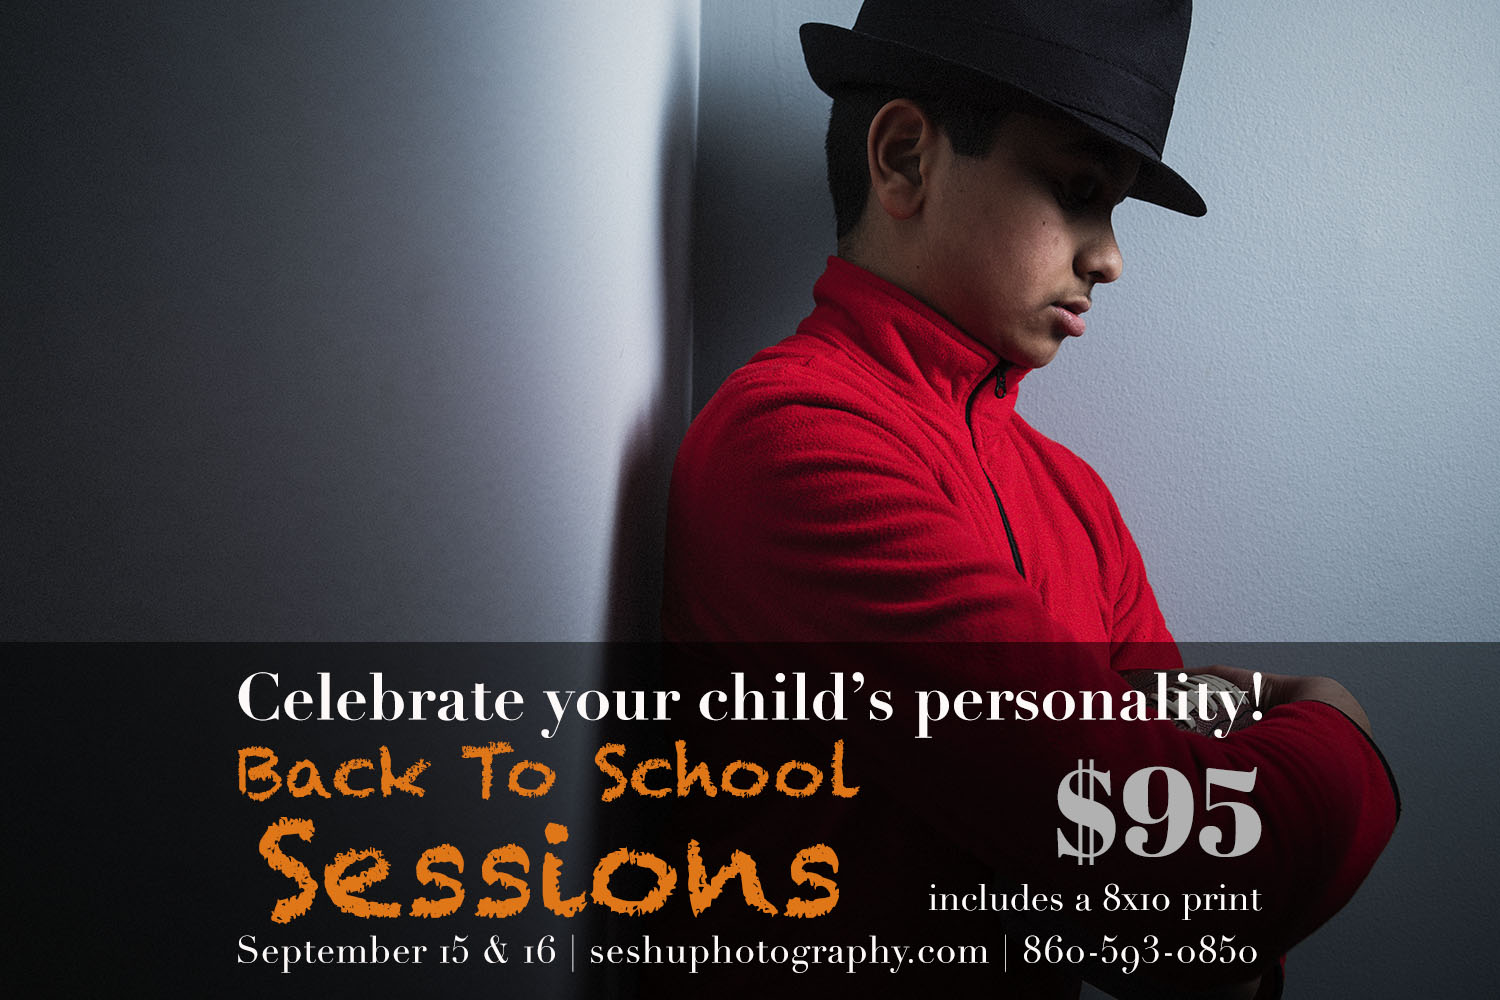 back-to-school-sessions-004.jpg